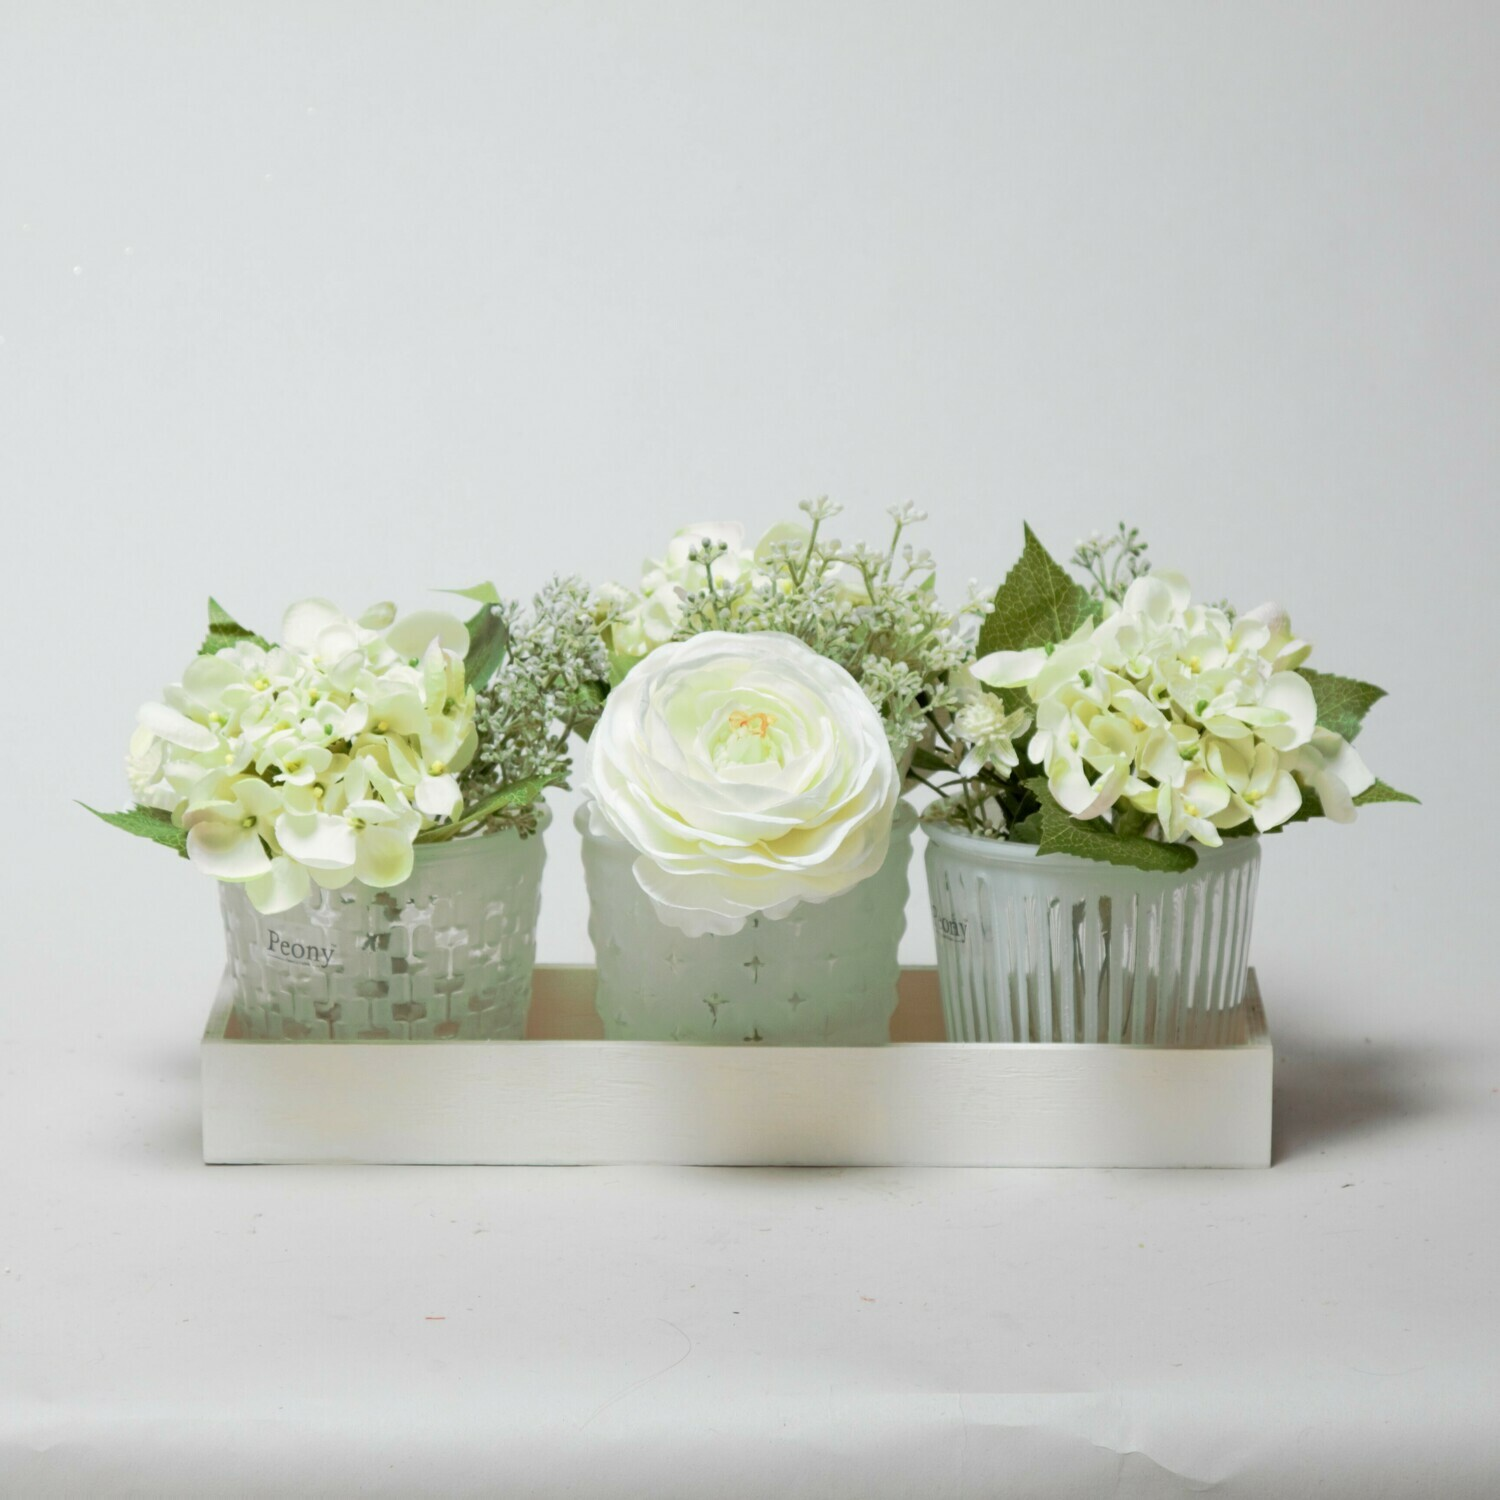 Set of three Hydrangea, Ranunculi and Eucalyptus seed in a wooden tray